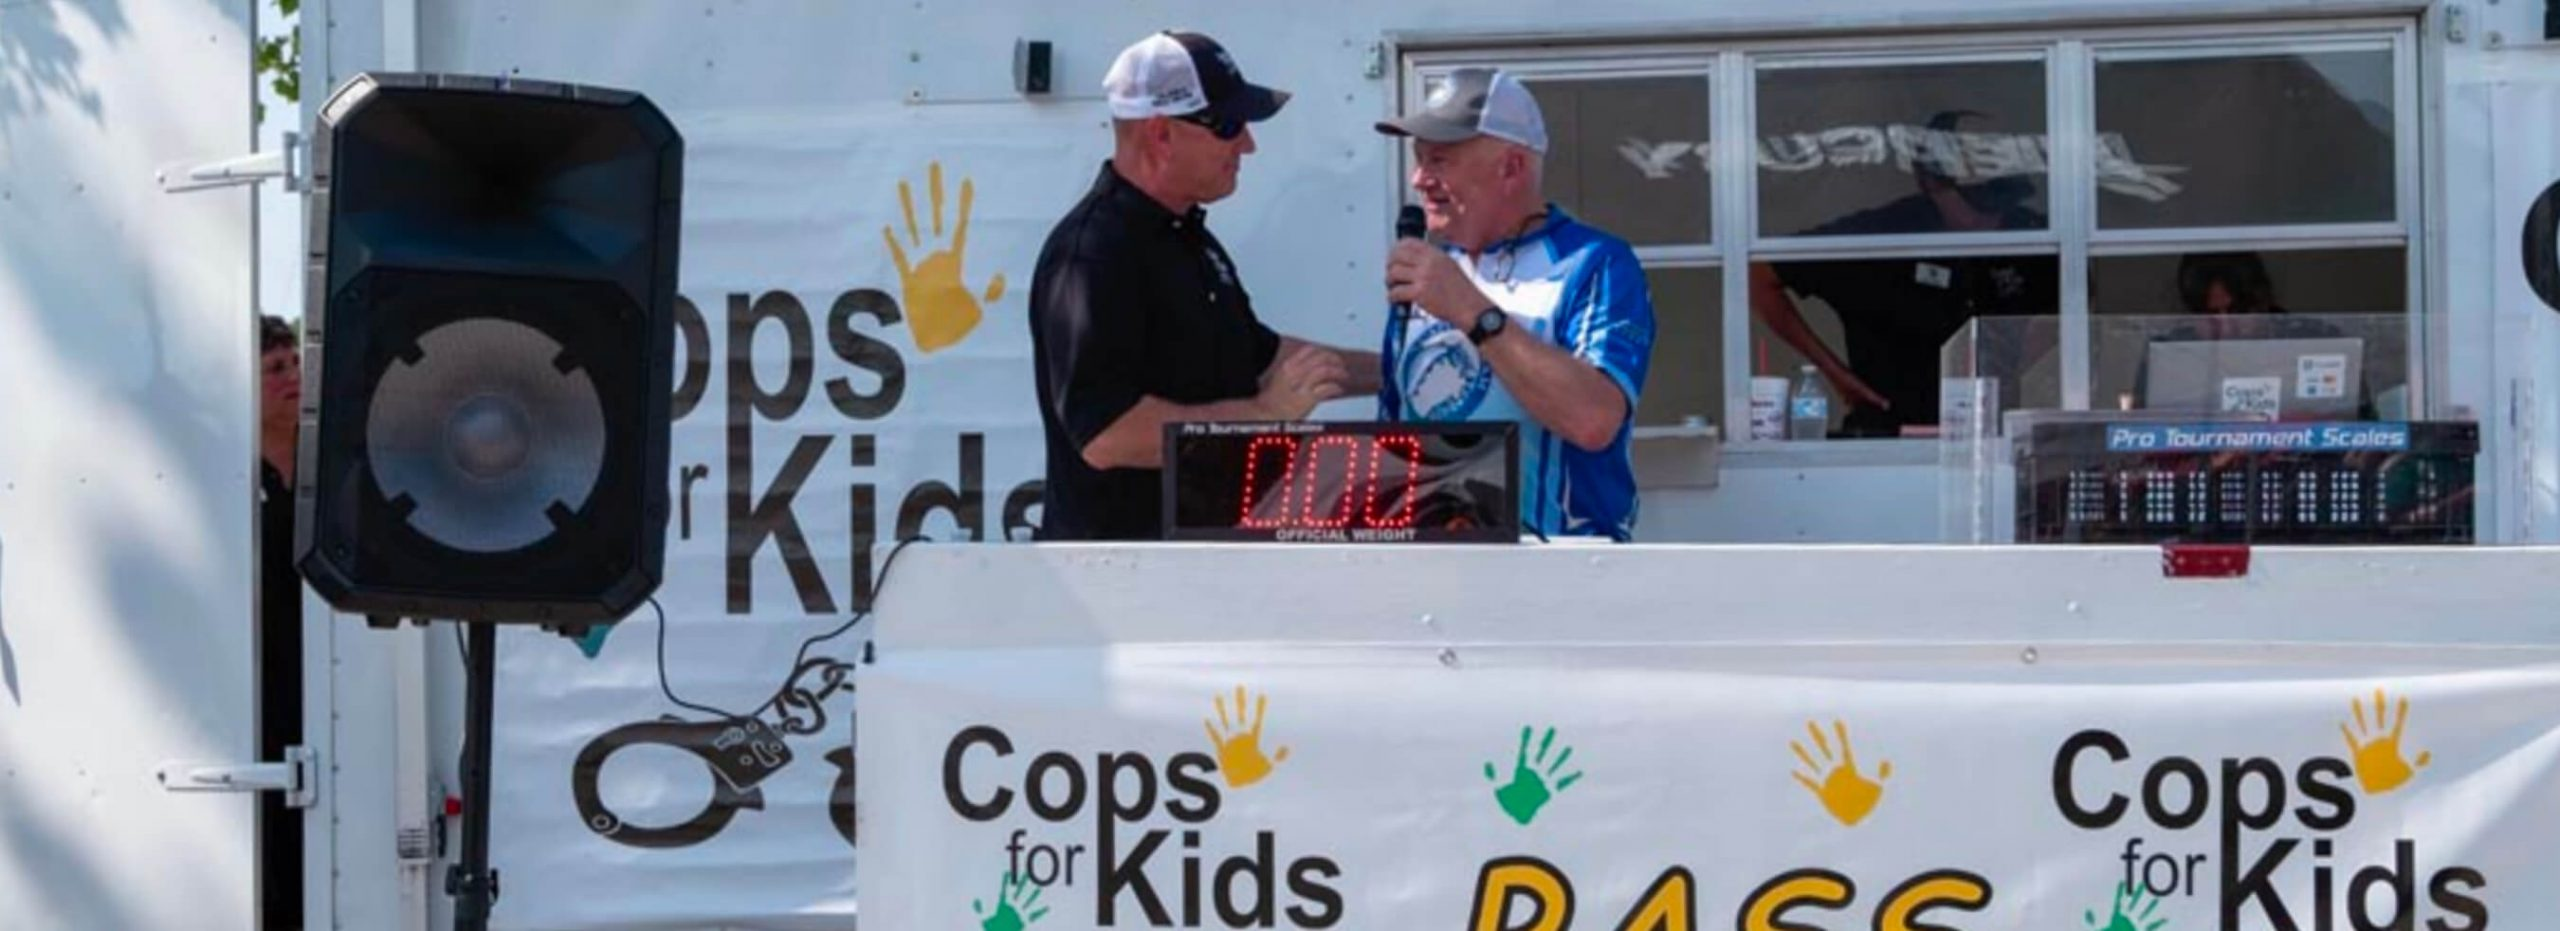 cops4kids_organizational